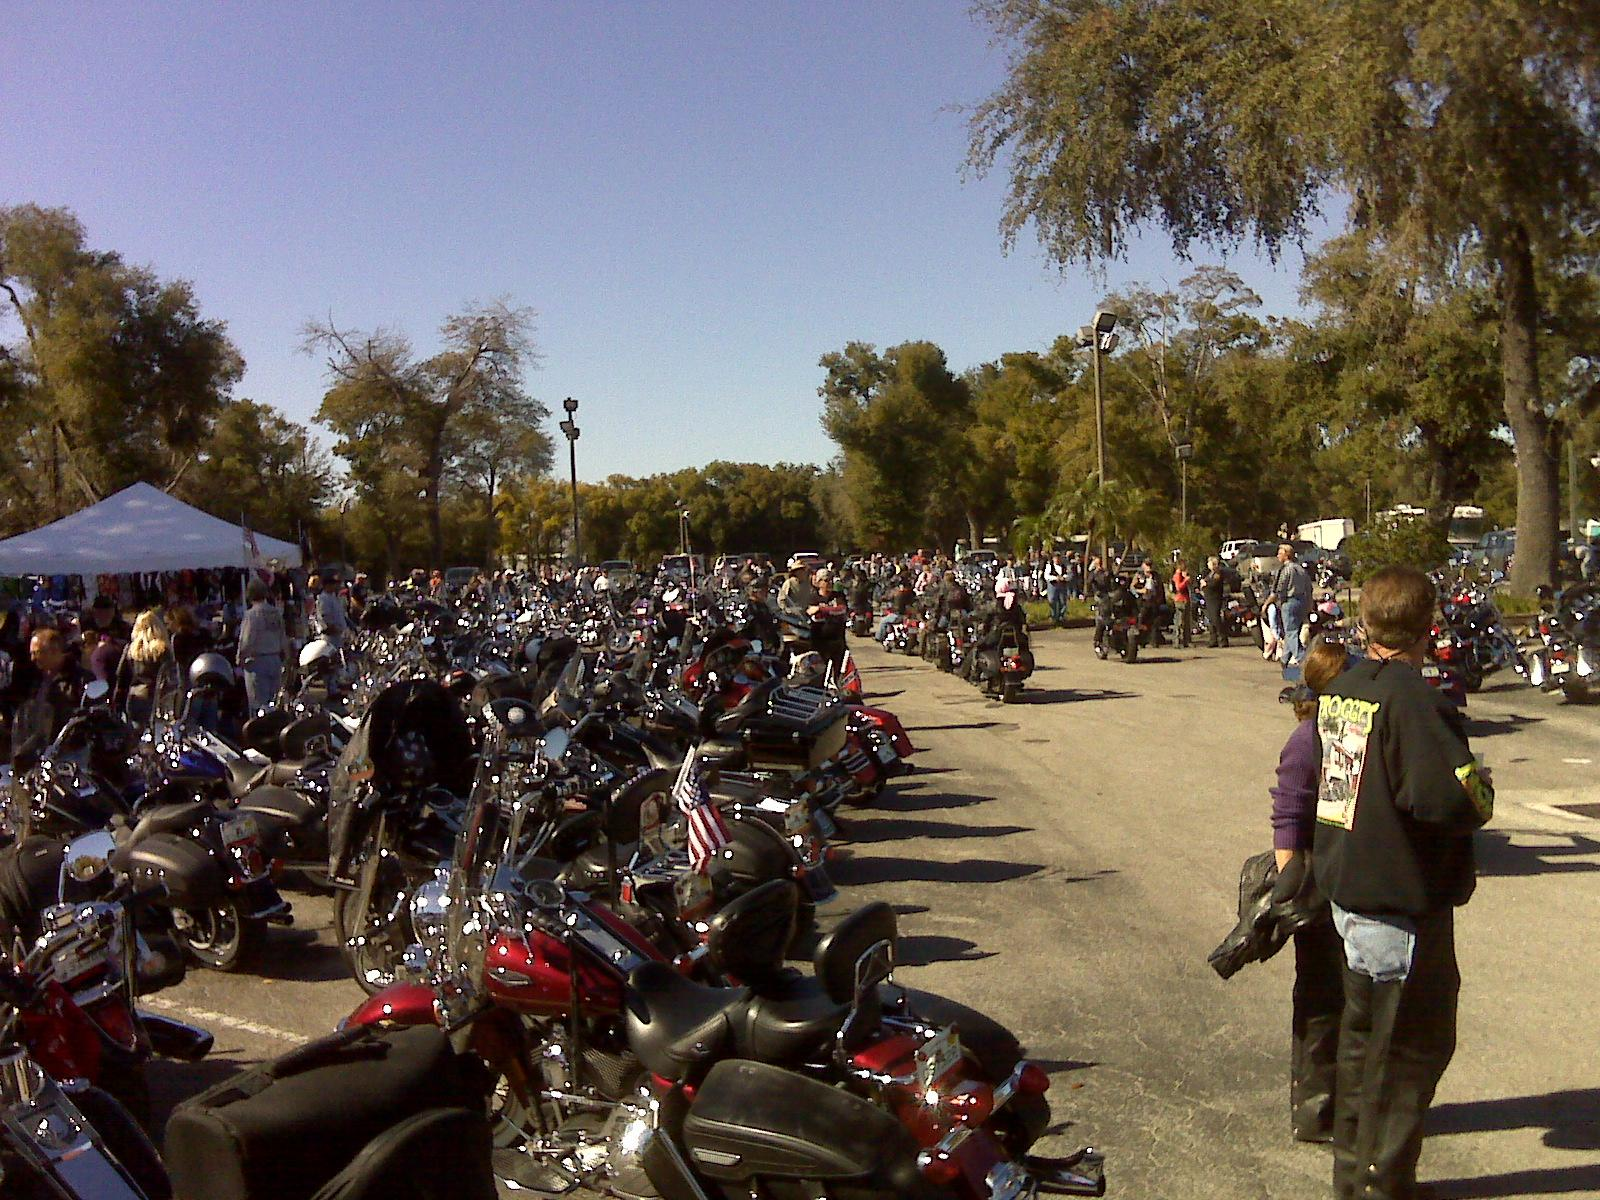 Bikes at the Chrome Angels Pink Ribbon breast cancer event